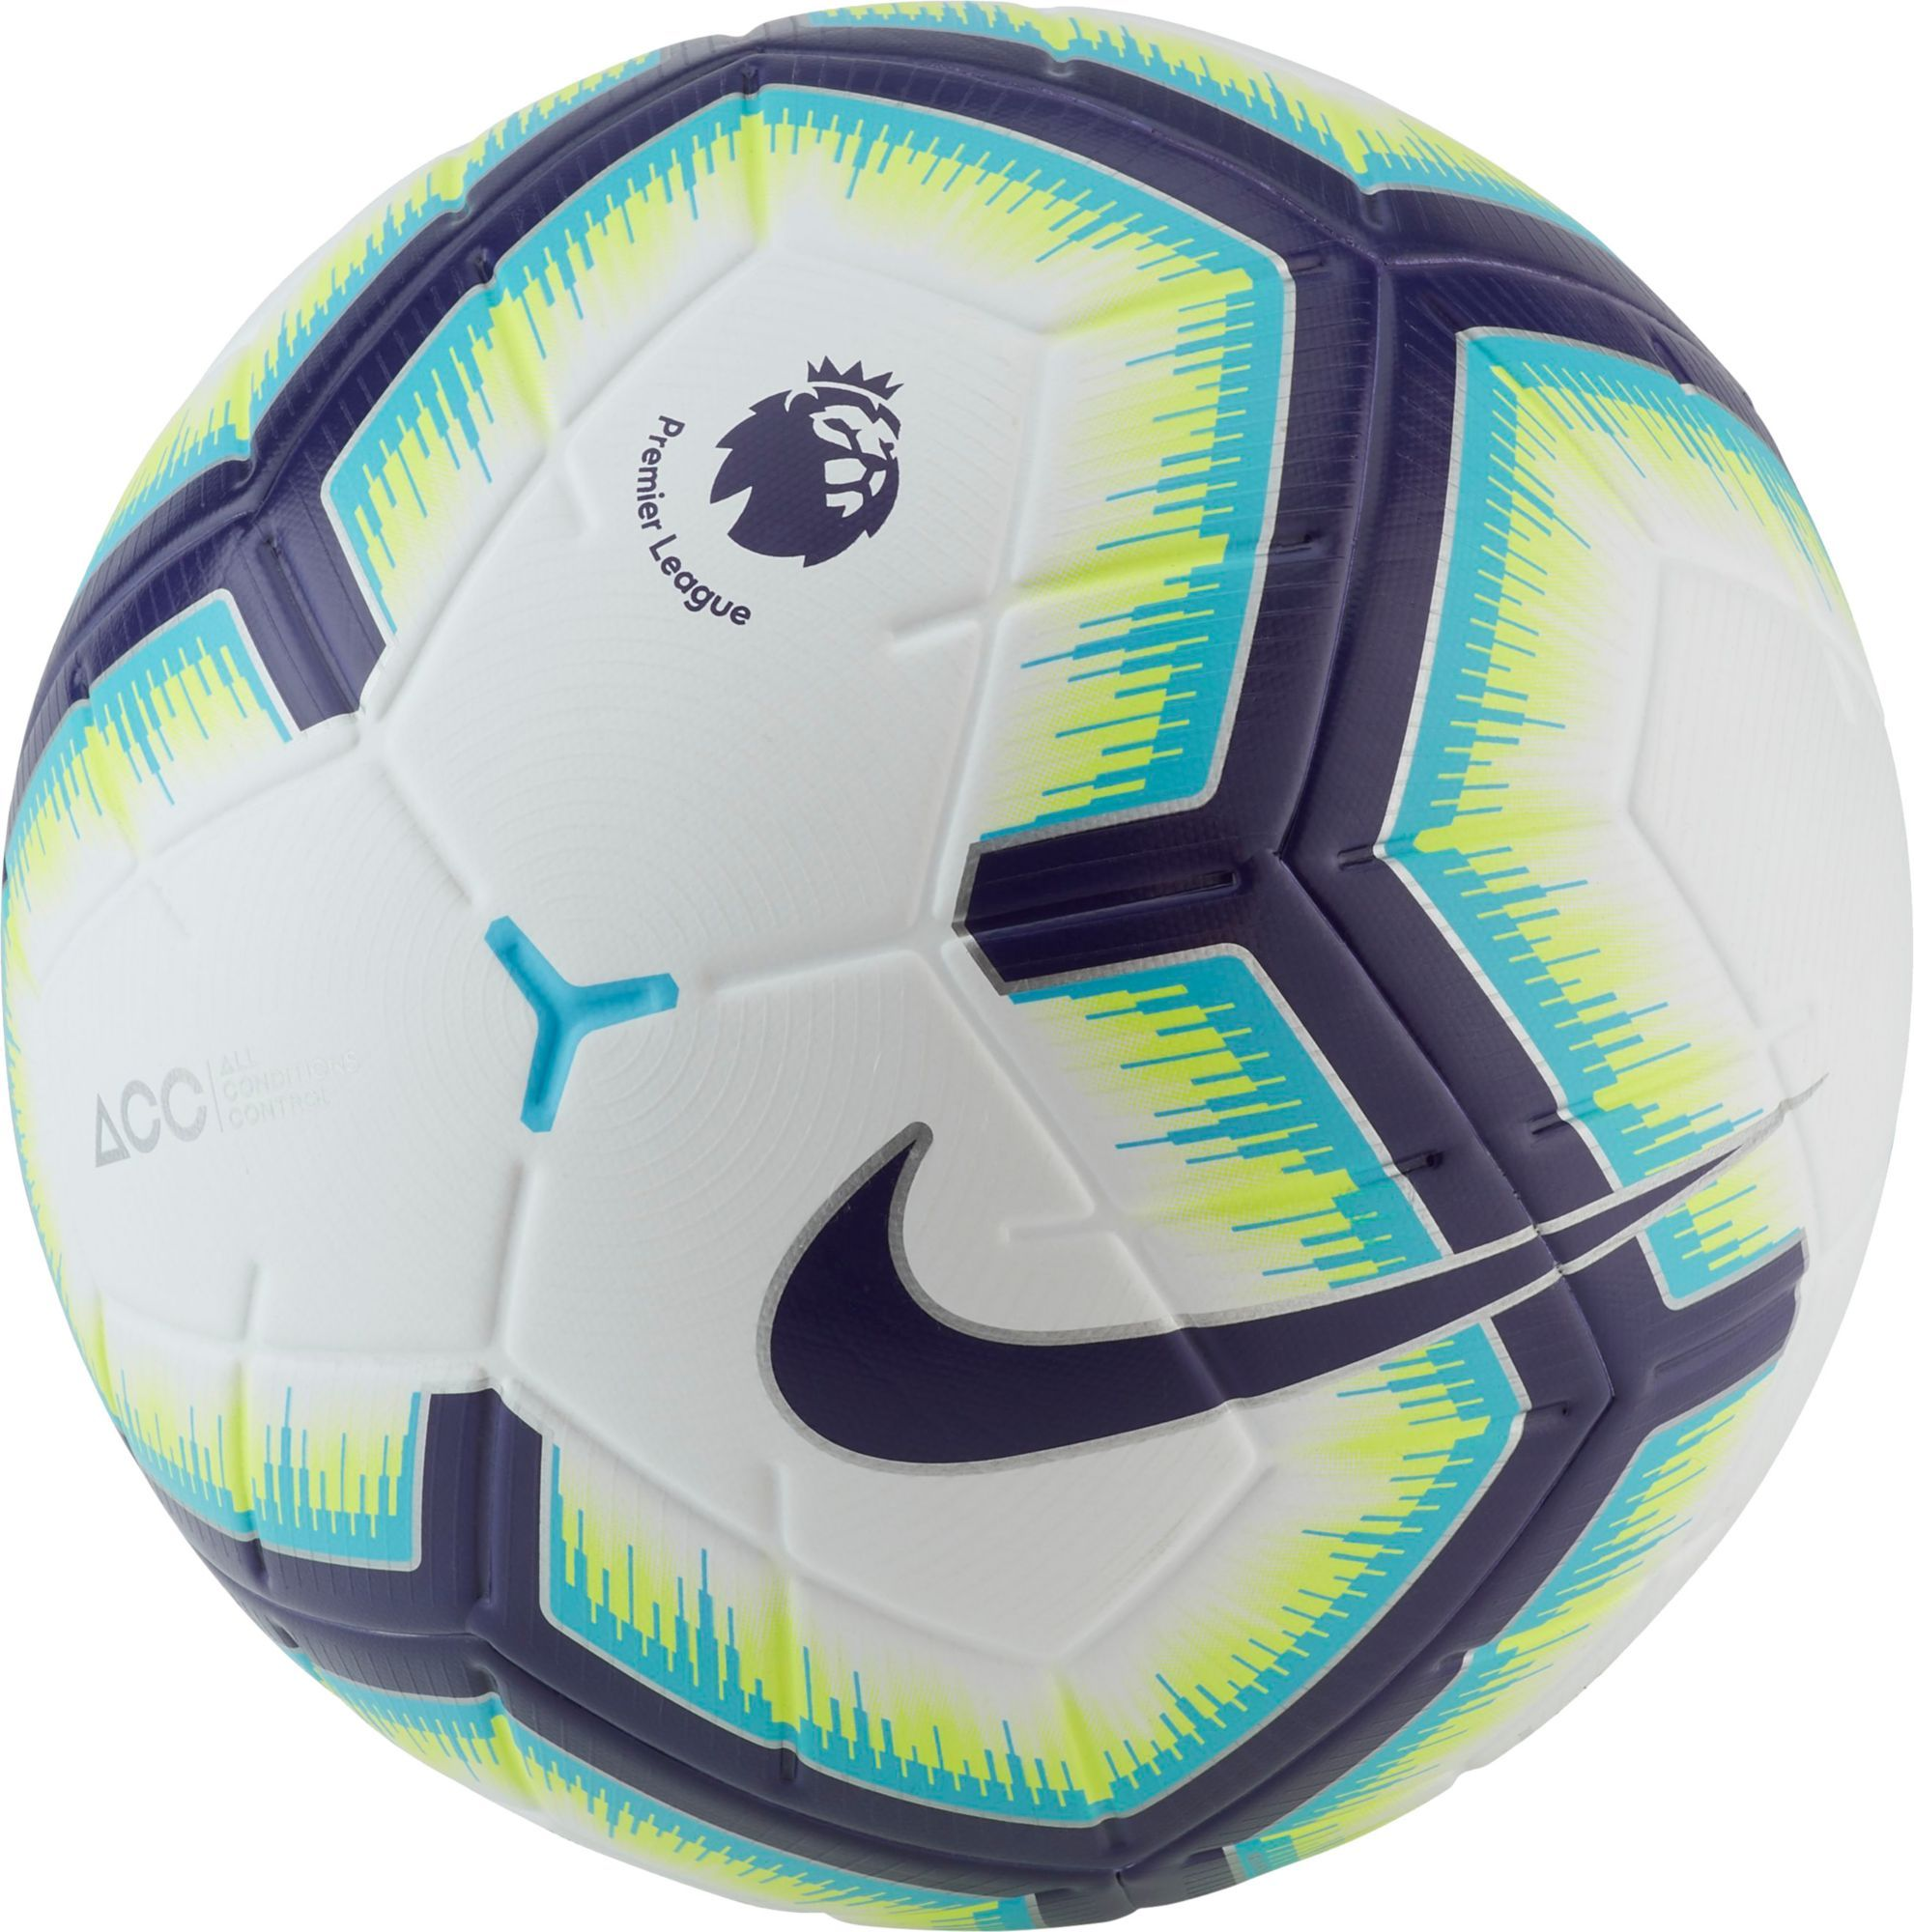 Nike Merlin Premier League Official Match Soccer Ball Nike Soccer Ball Soccer Ball Soccer